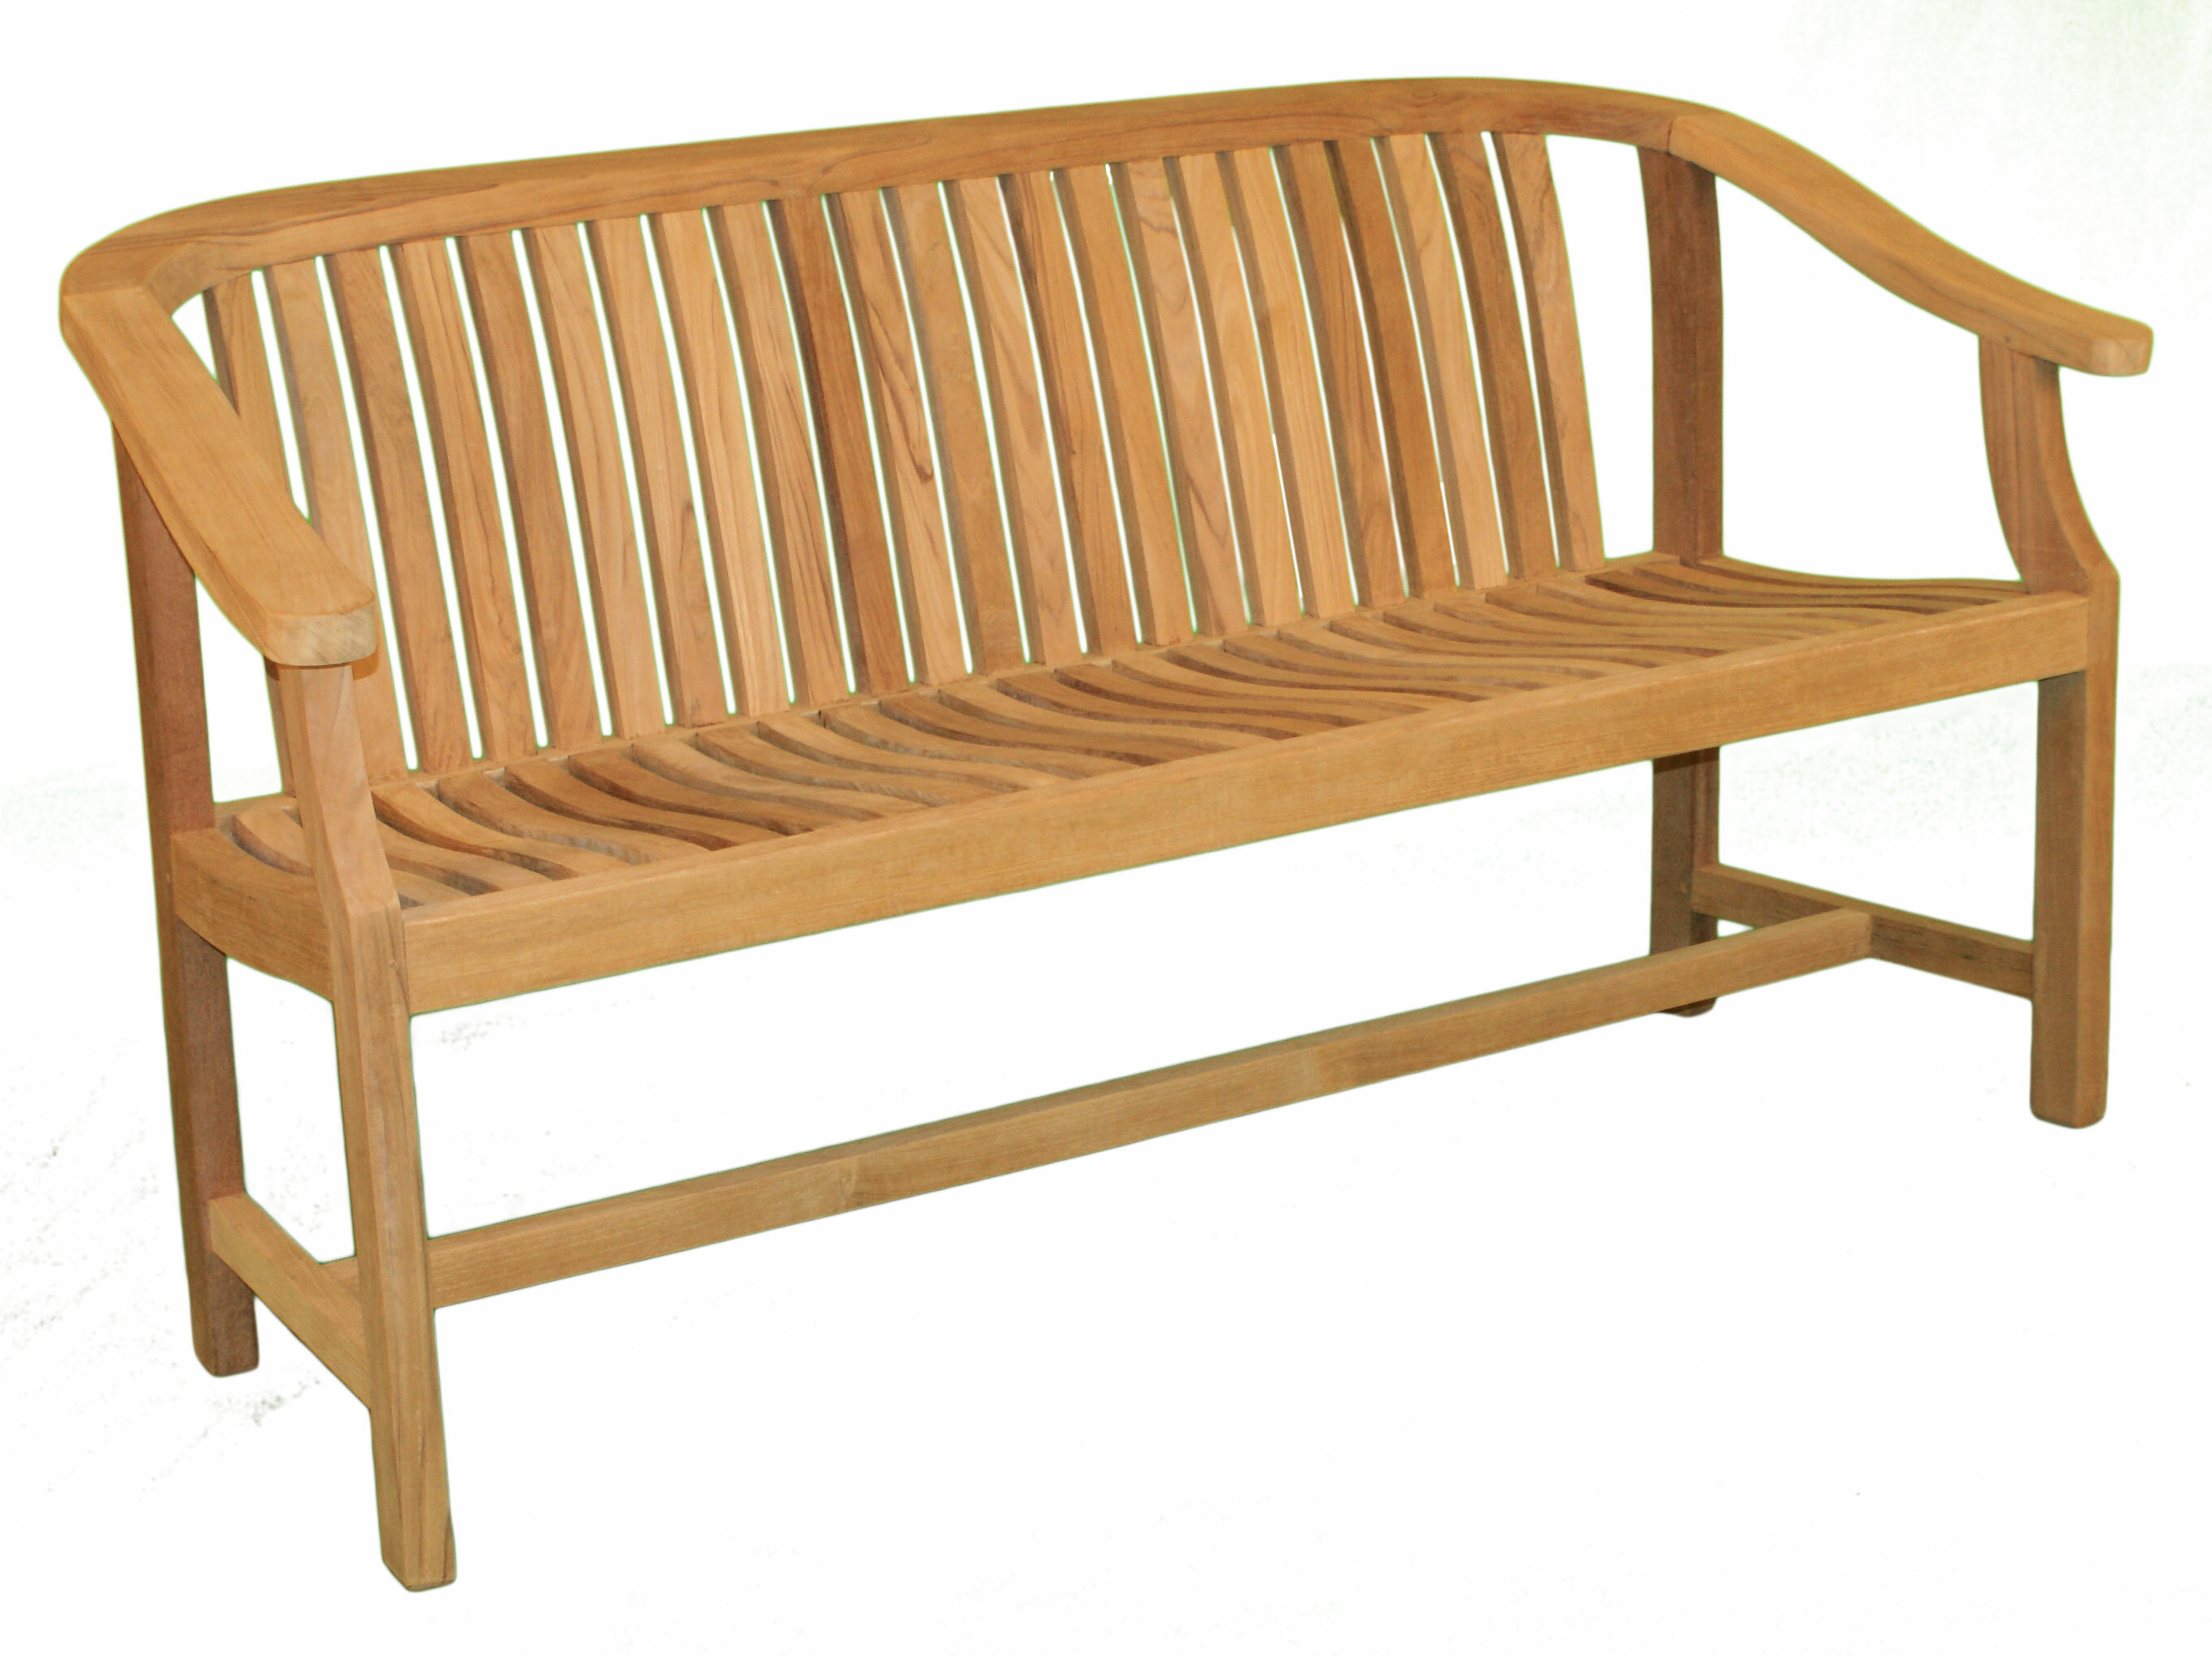 teak warehouse seat benches bench garden furniture two for outdoor seater angle